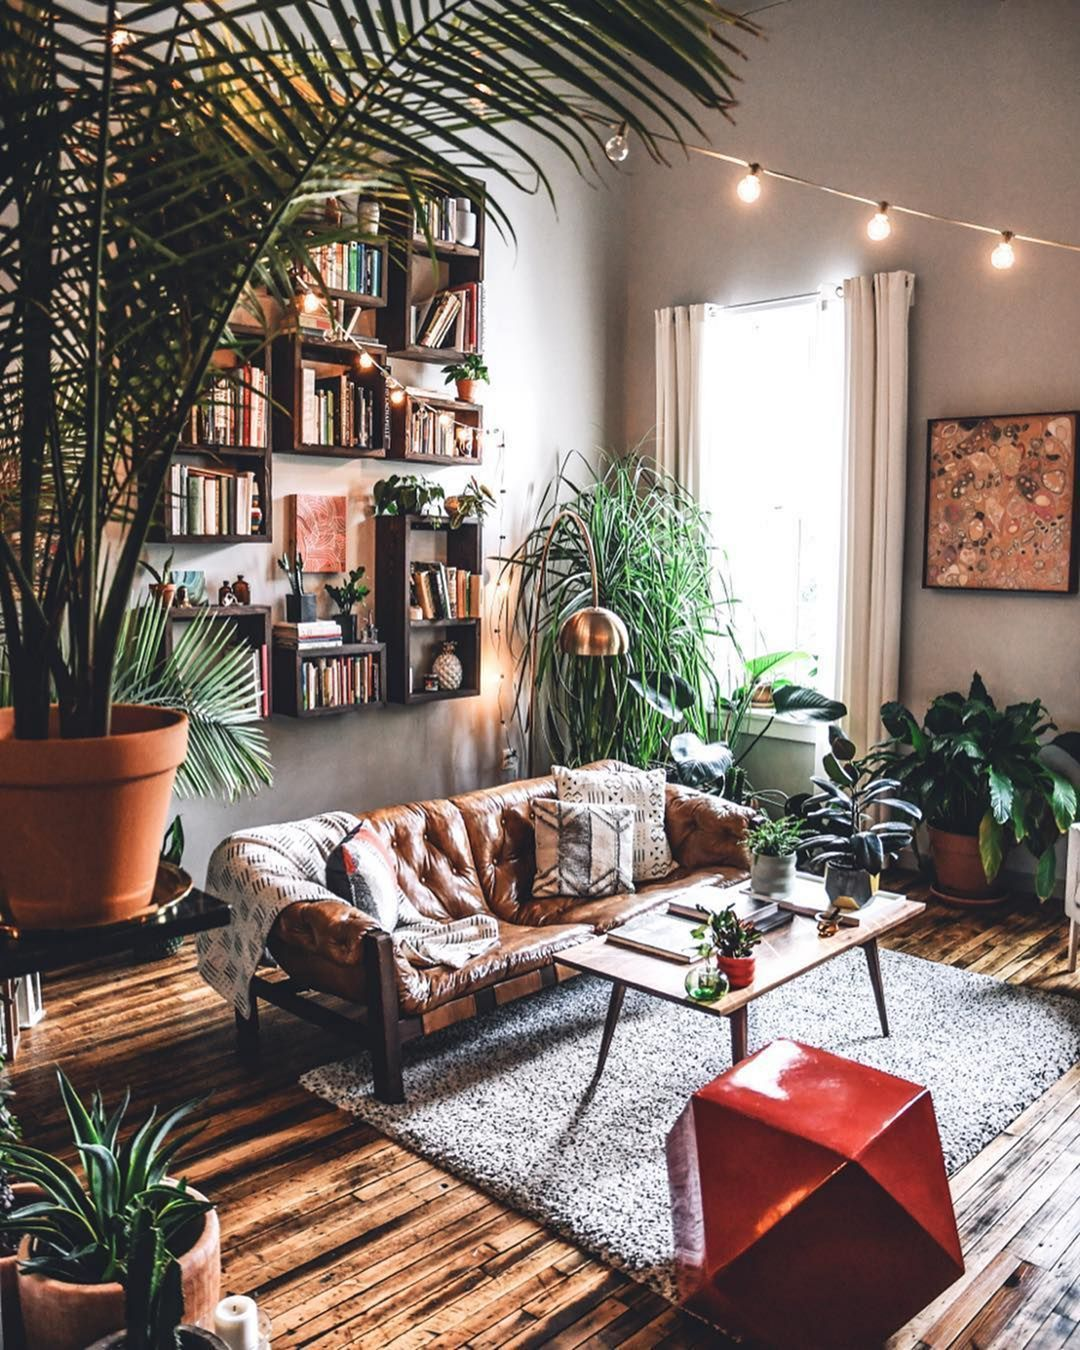 73 Eclectic Living Room Decor Ideas: Enjoy Your Apartment Interior With Stunning Ideas